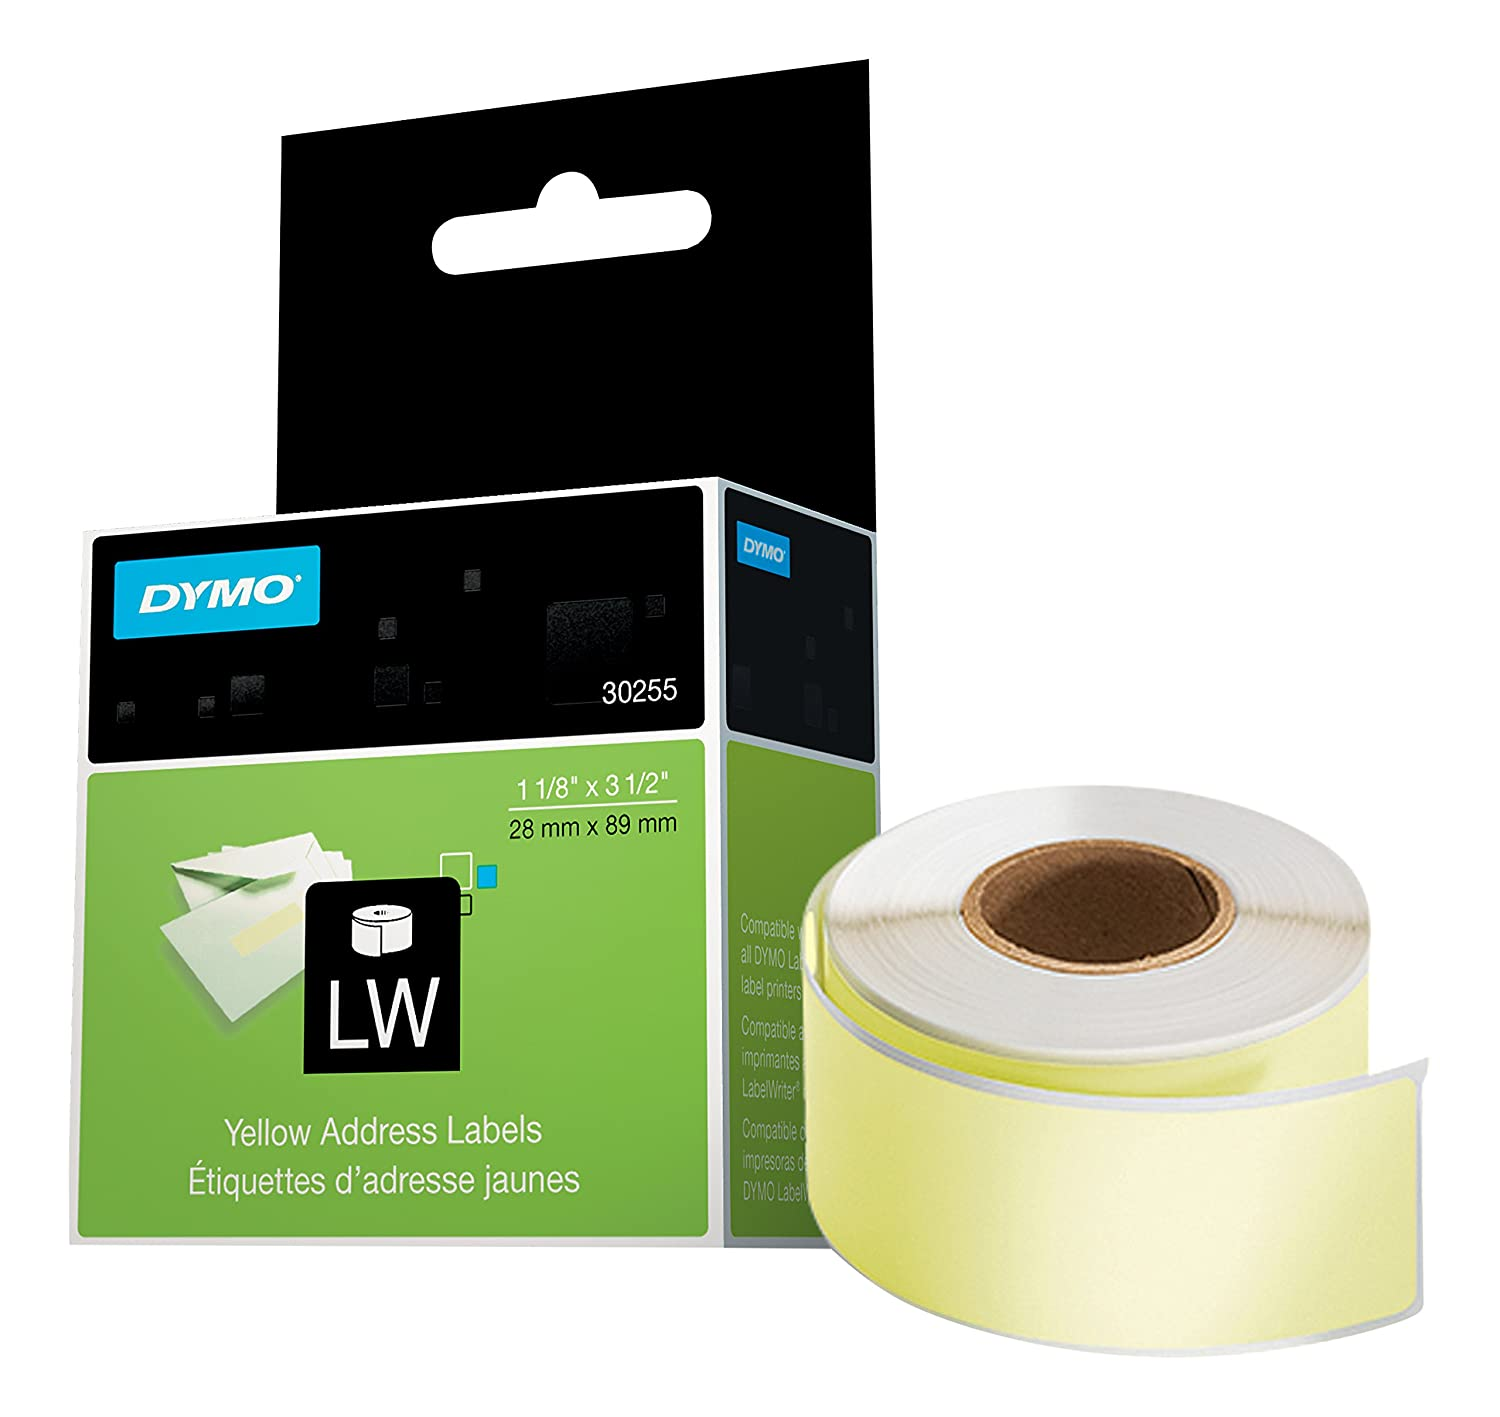 Amazon.com : DYMO LW Mailing Address Labels for LabelWriter Label ...